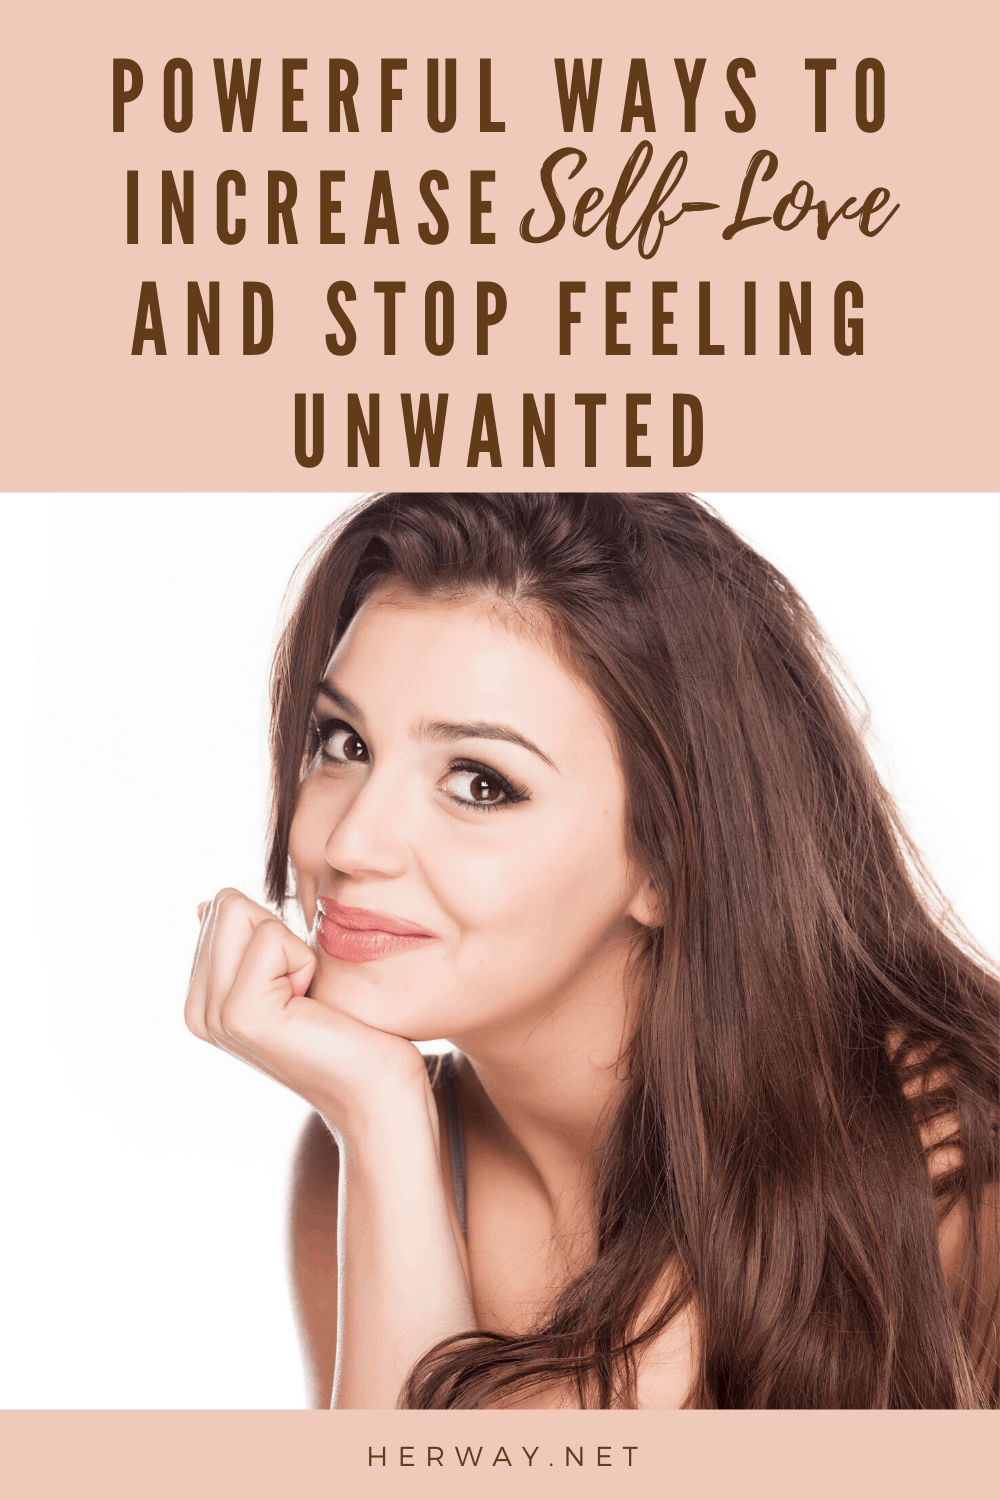 Powerful Ways To Increase Self-Love And Stop Feeling Unwanted